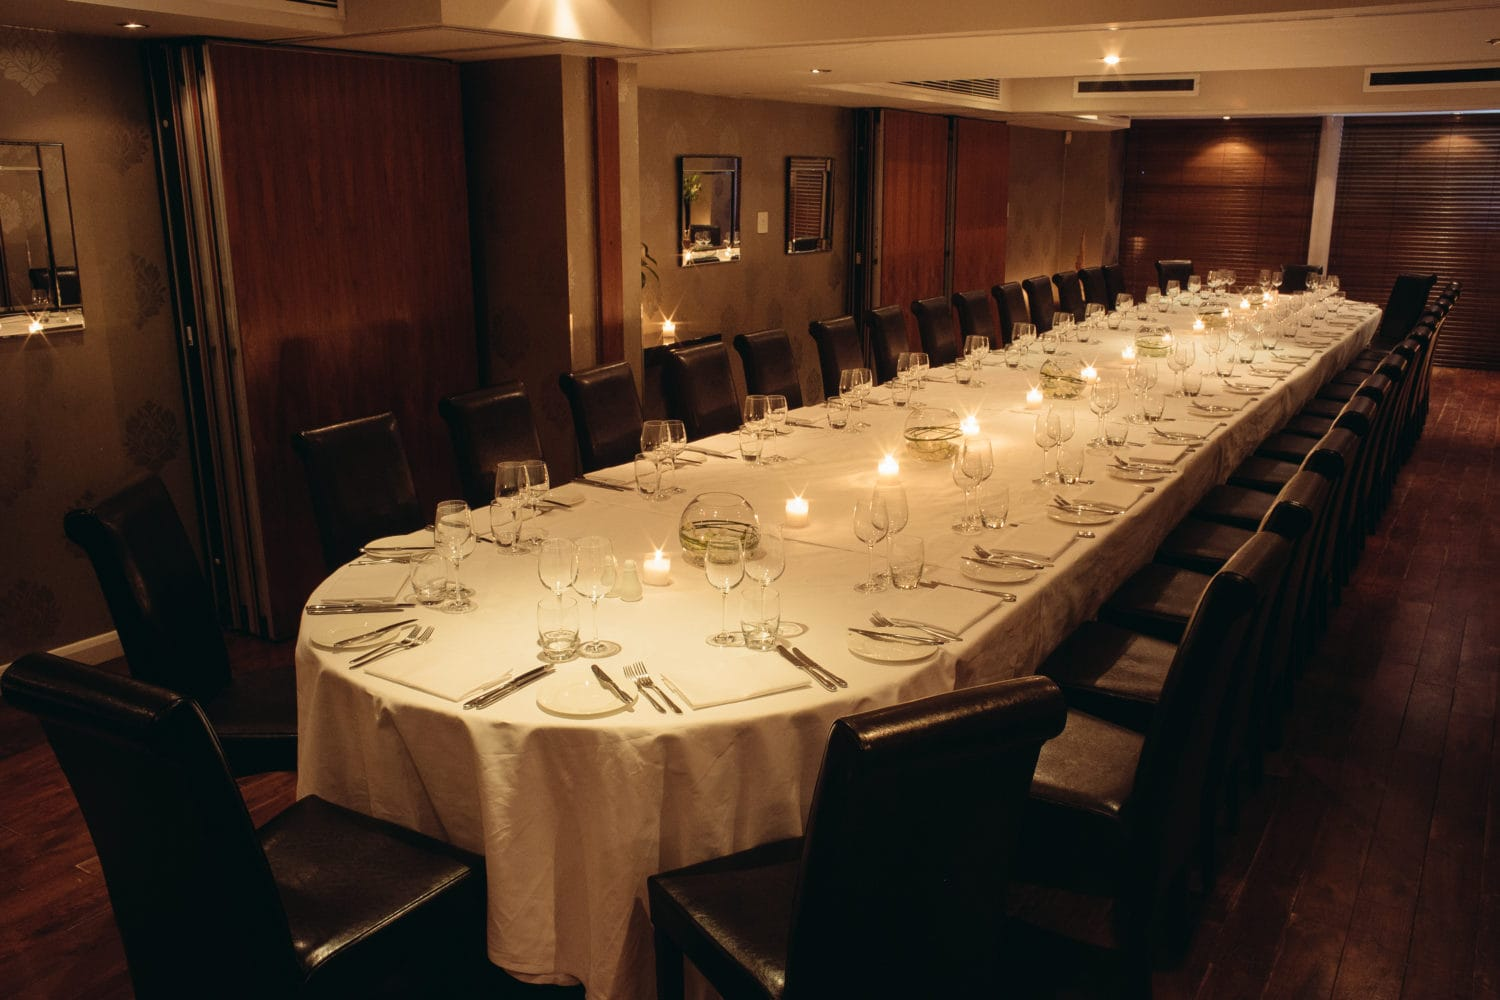 chardon-d'or-scottish-glasgow-wedding-venue-restaurant-dining